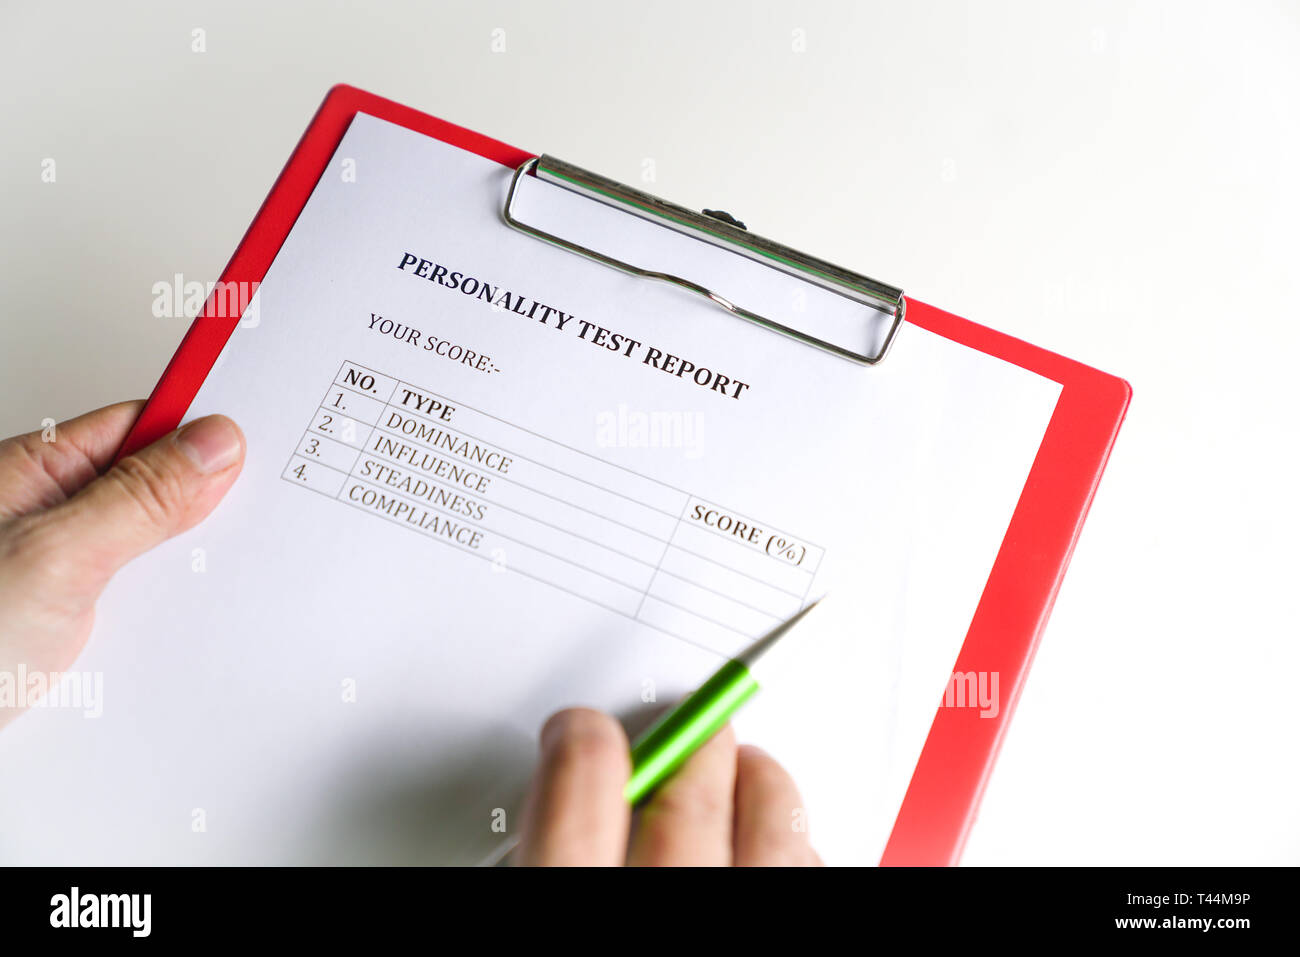 Personality test or assessment form as part of job interview screening process. An employment or hiring concept - Stock Image